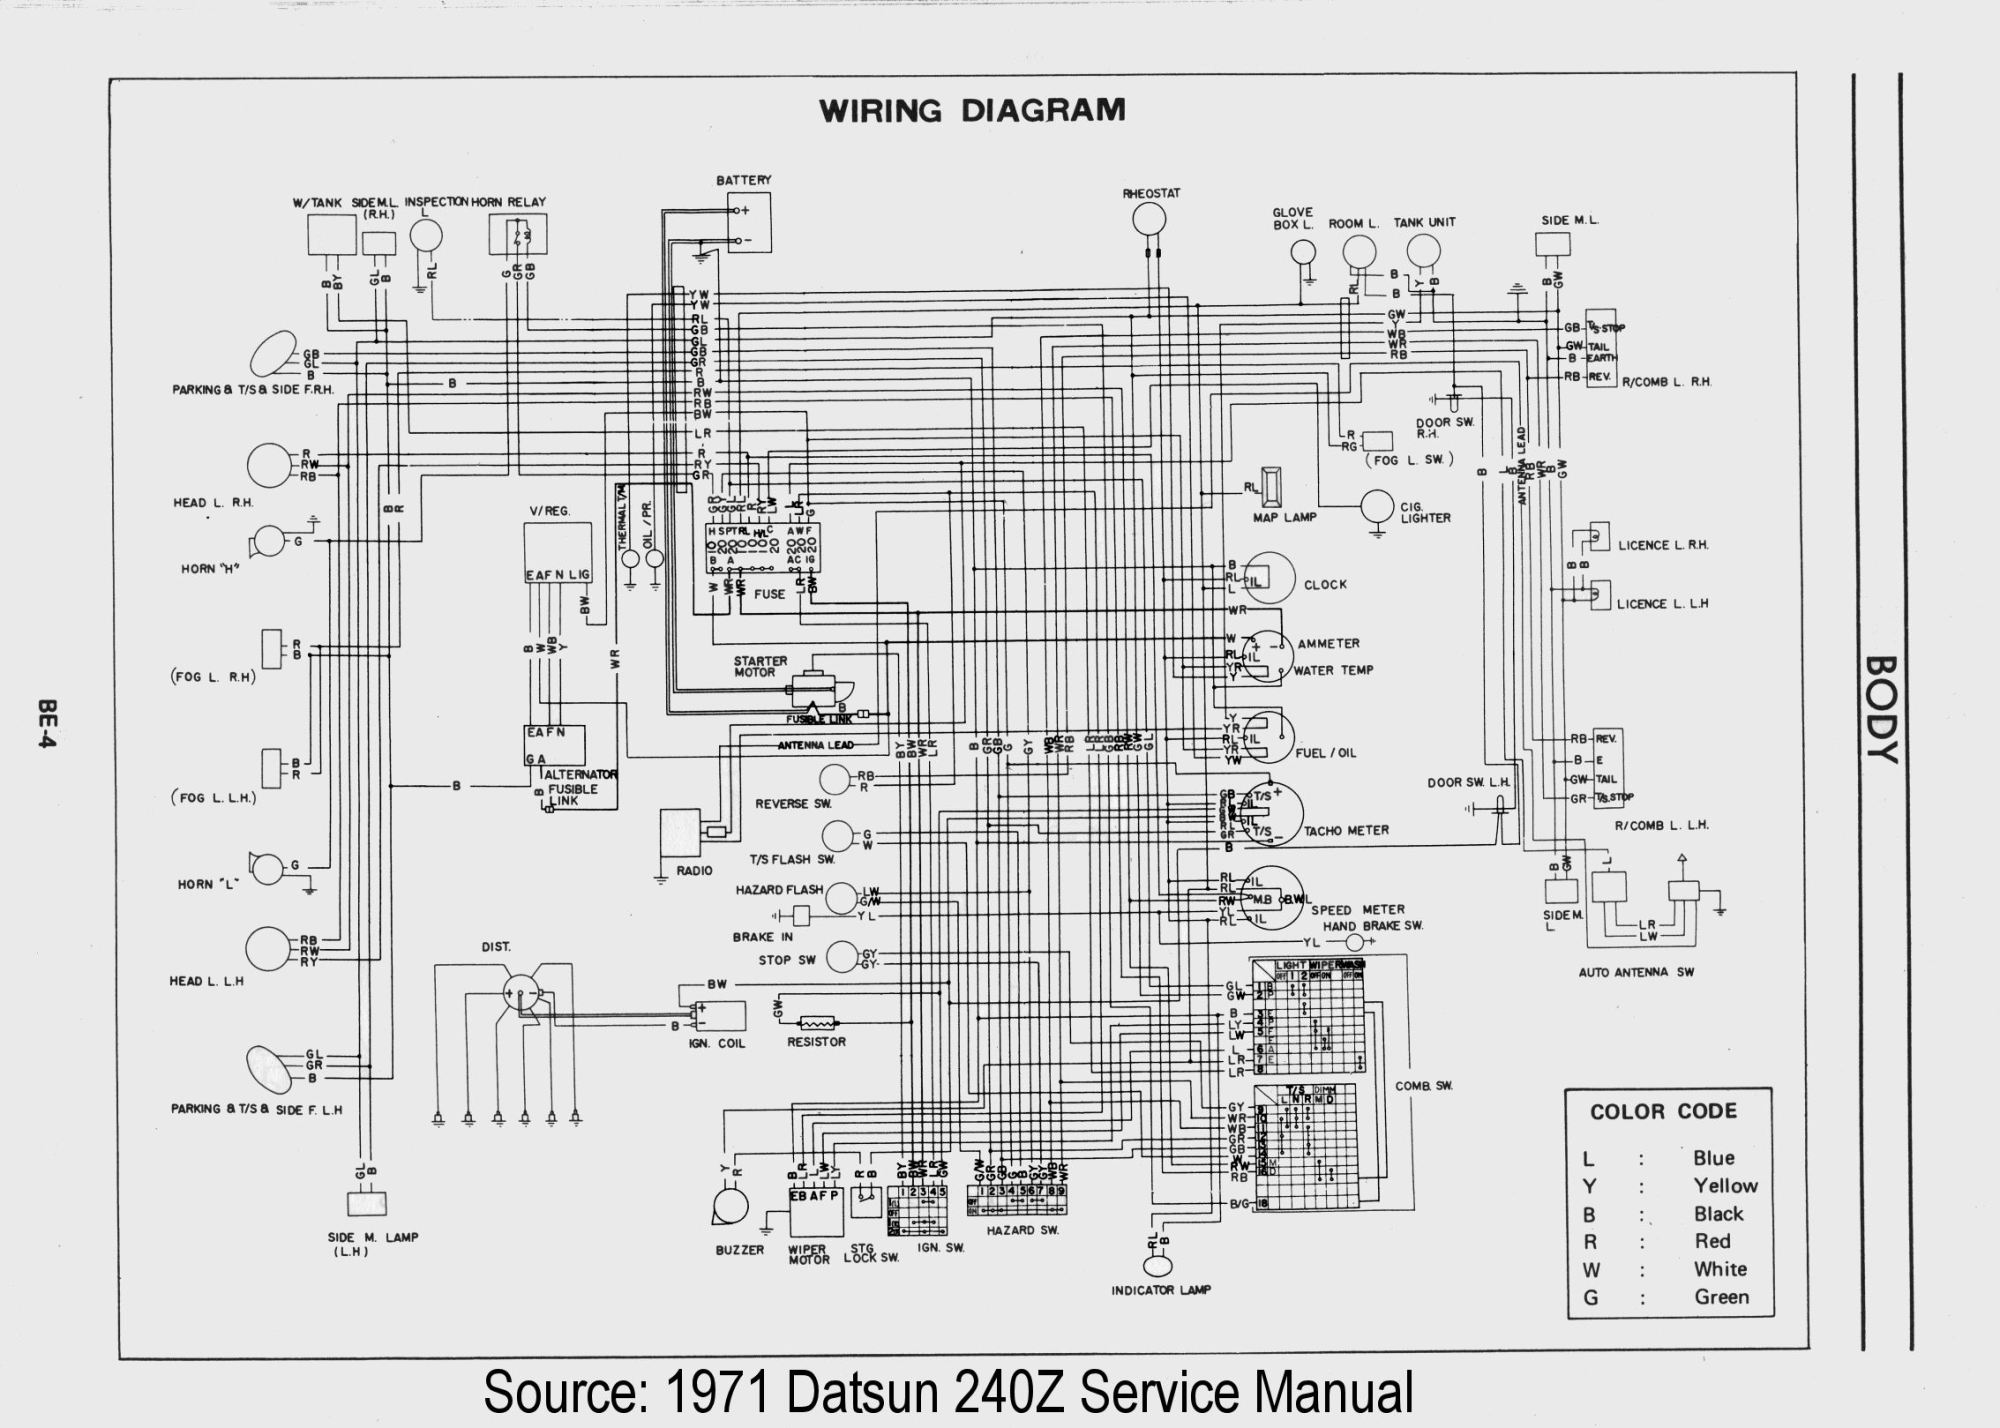 hight resolution of 300zx horn wiring diagram wiring diagram schematics vacuum line diagram 240z wiring diagram wiring diagram explained